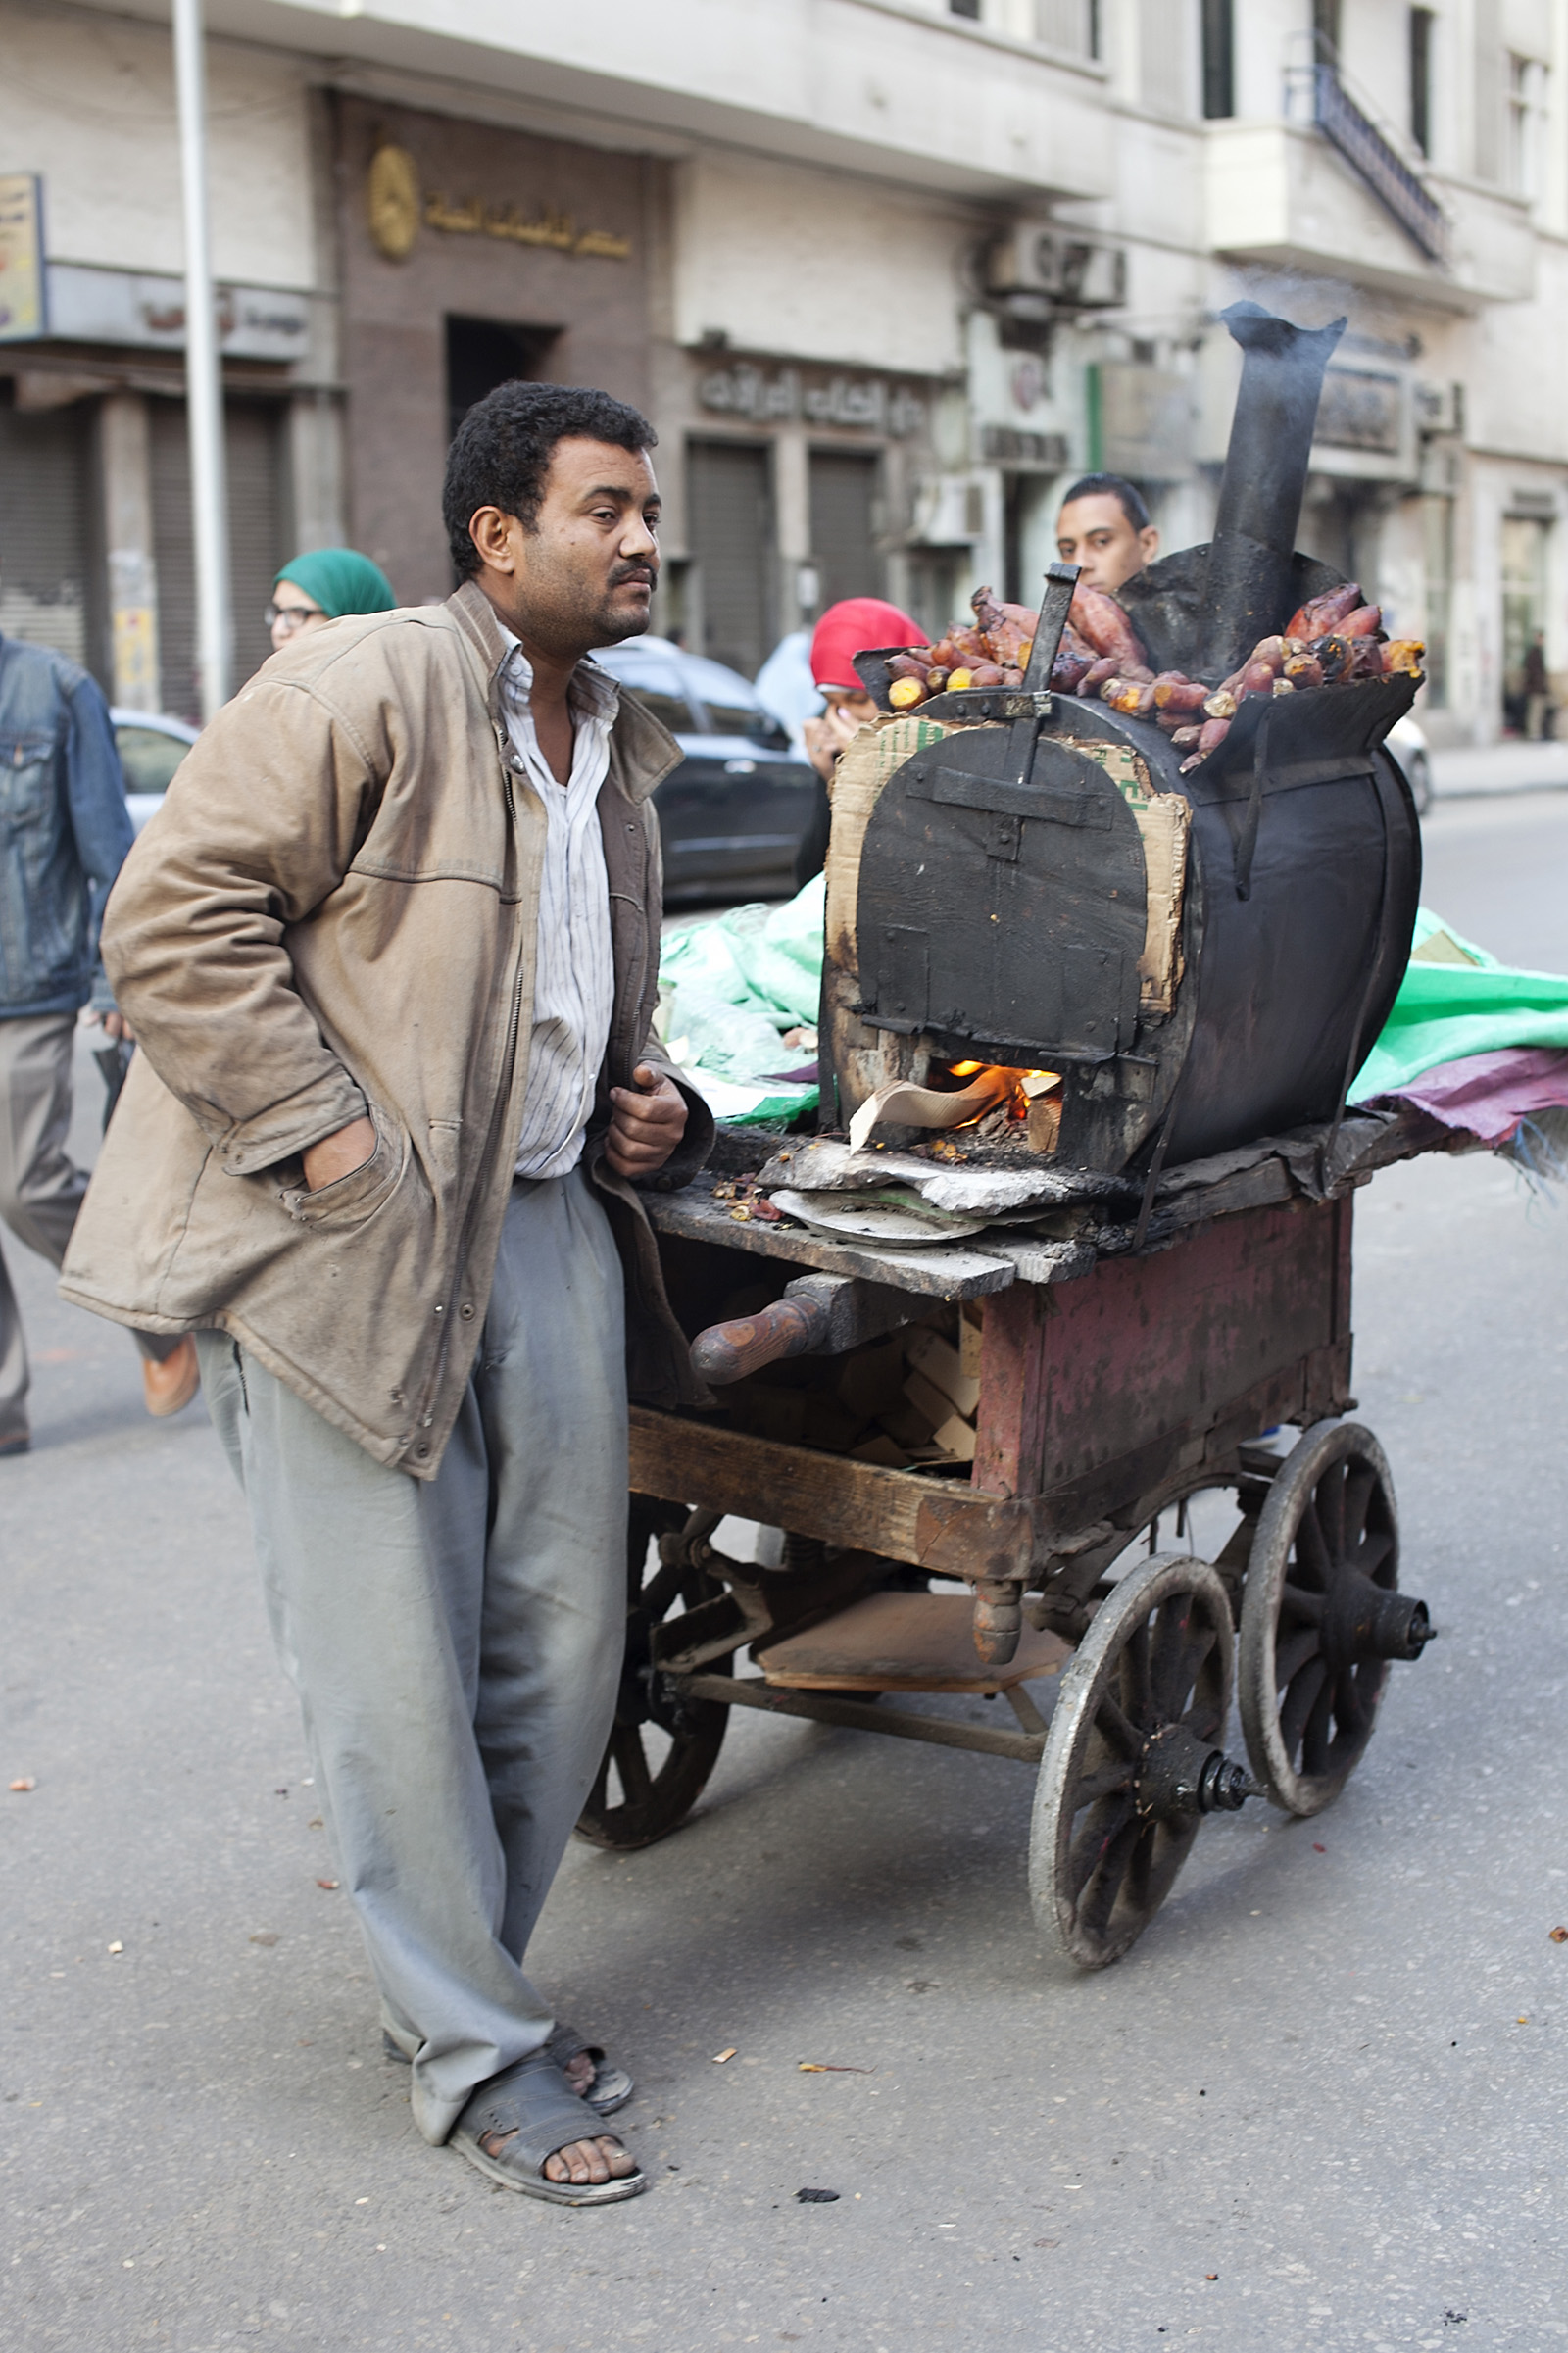 Street food stalls offer fresh roasted sweet potatos and chestnuts in Cairo.